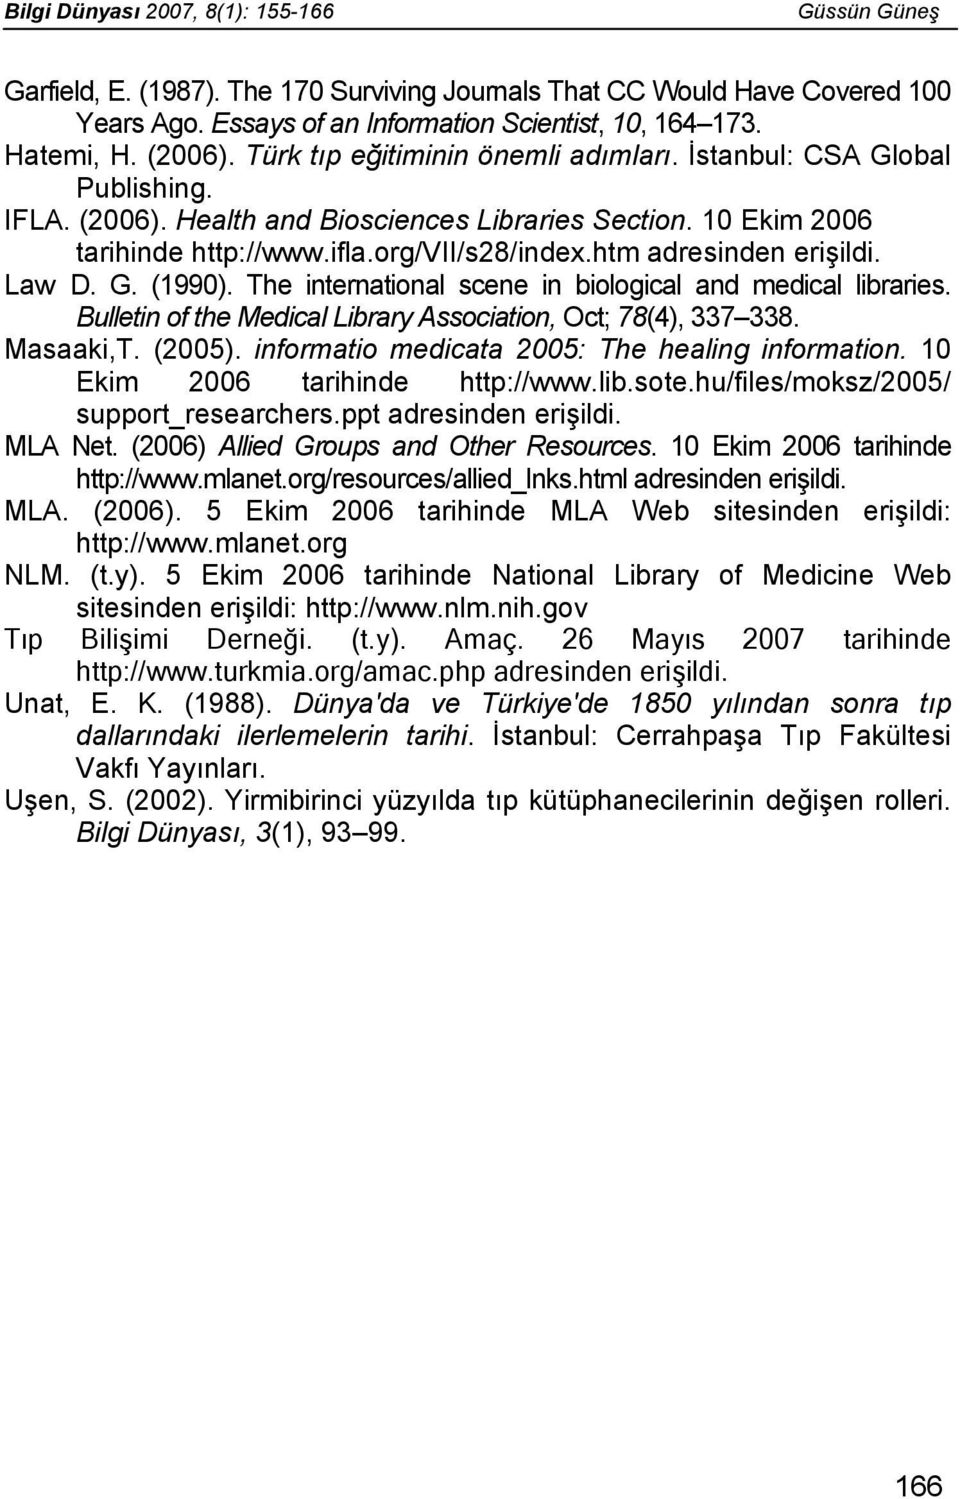 htm adresinden erişildi. Law D. G. (1990). The international scene in biological and medical libraries. Bulletin of the Medical Library Association, Oct; 78(4), 337 338. Masaaki,T. (2005).